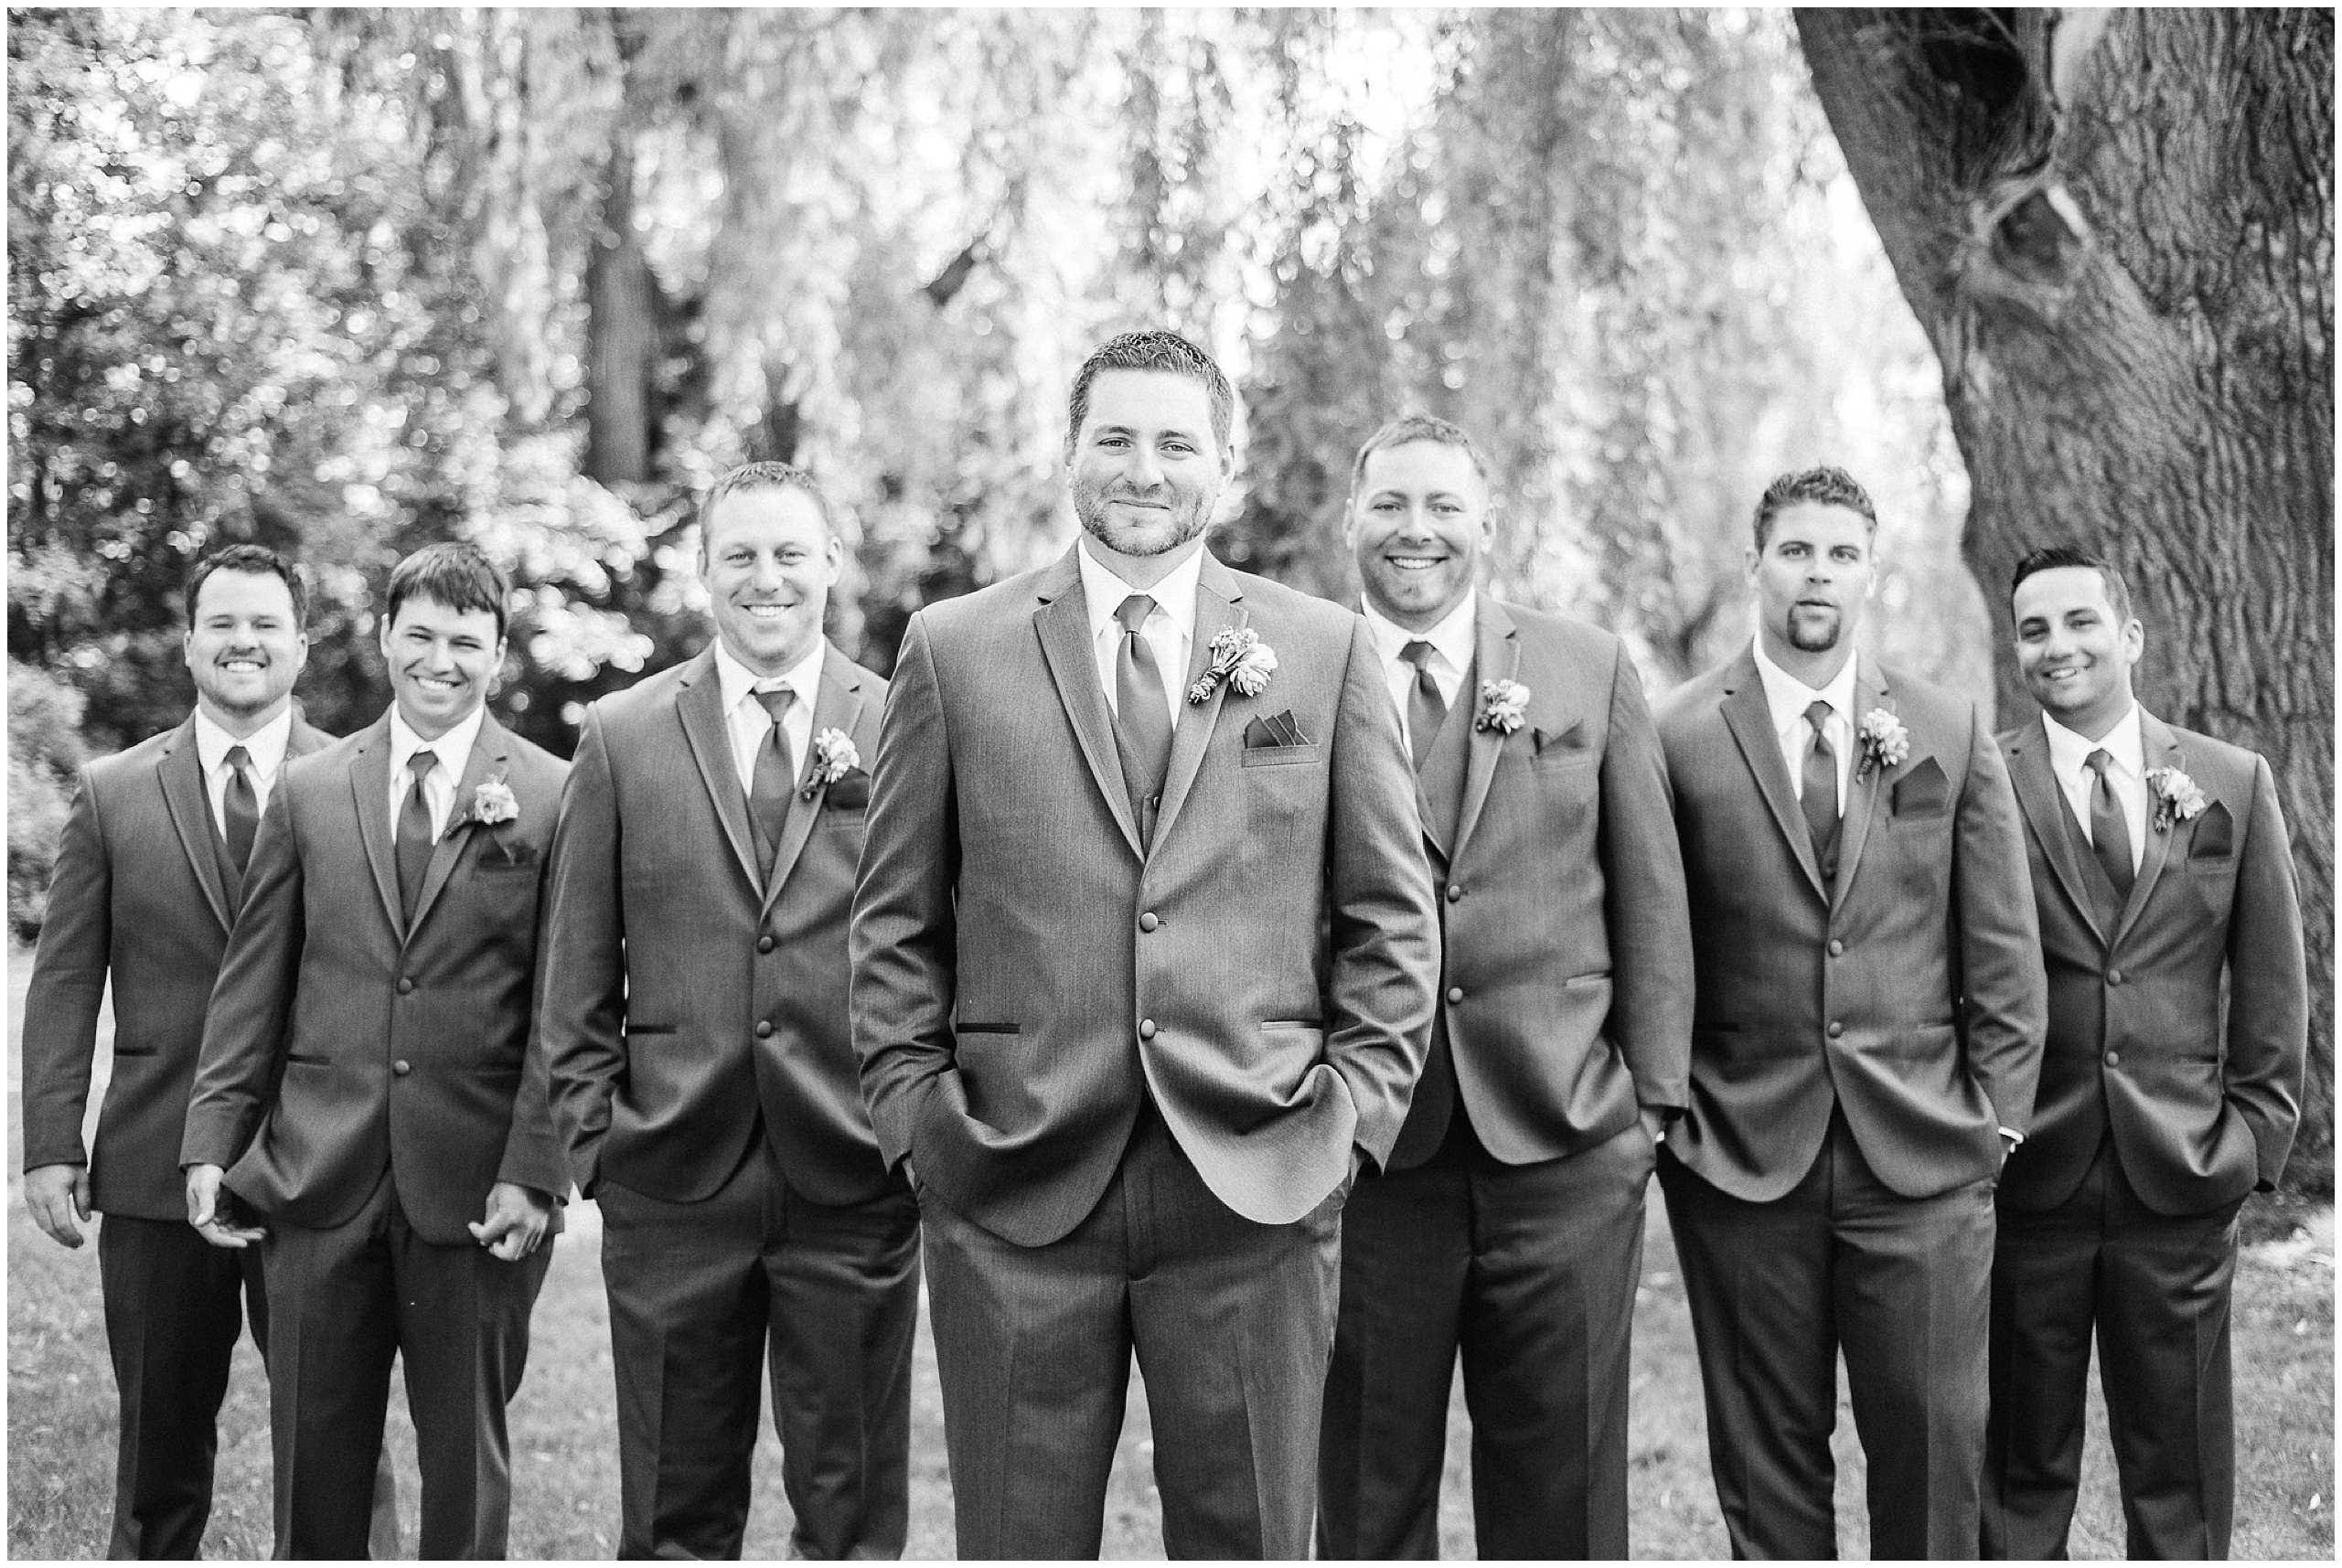 Groomsmen at Bear Estate wedding, photographed by Jenn Kavanagh Photography